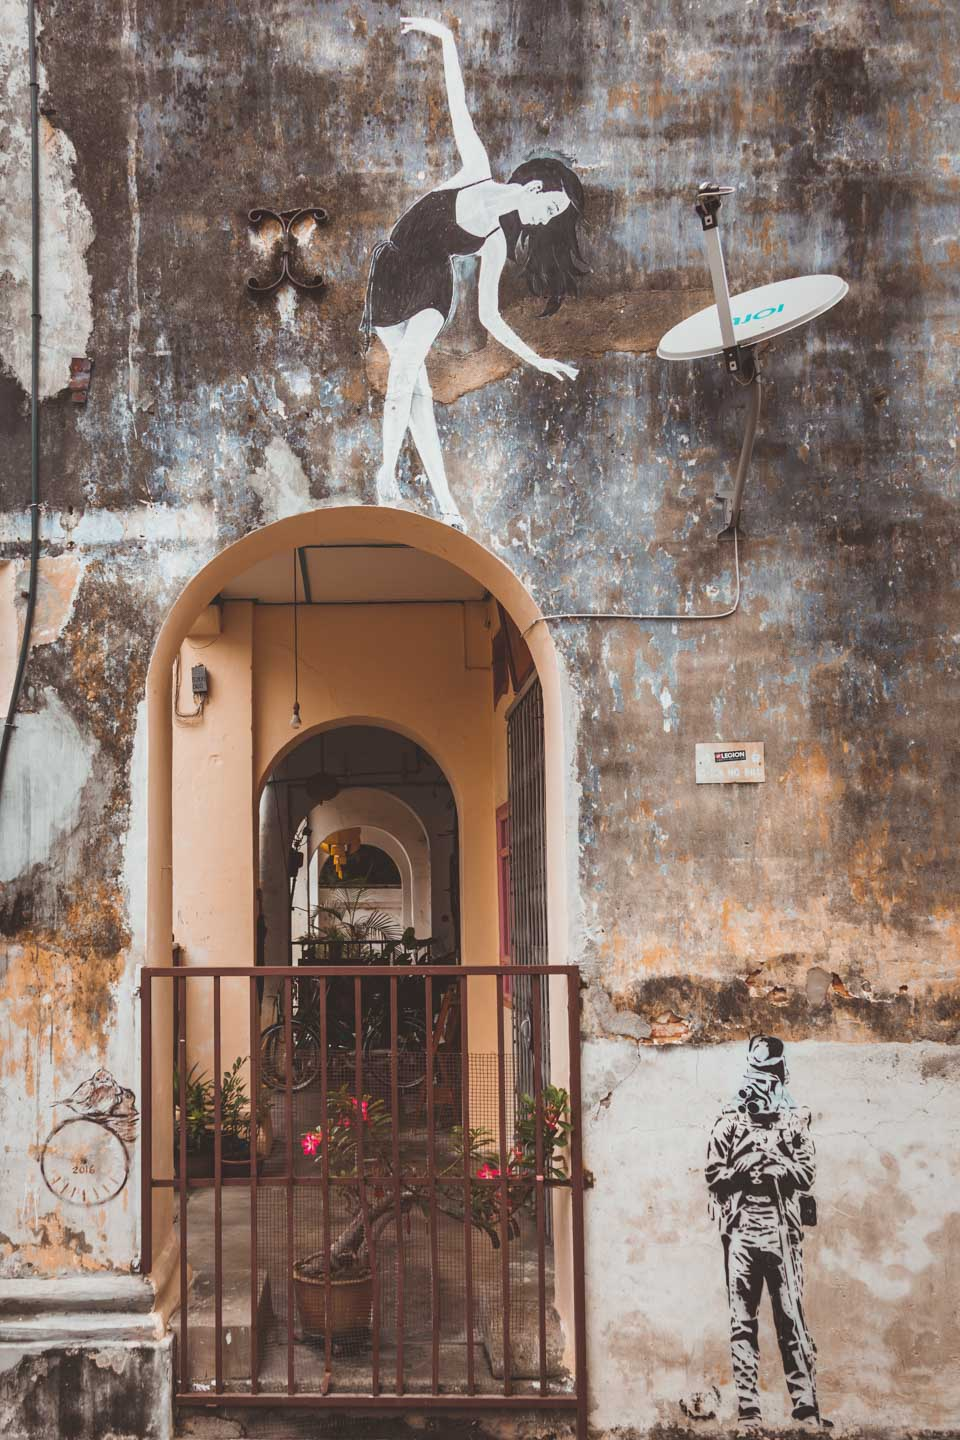 Ballerina on an archway, Georgetown Street Art, Penang